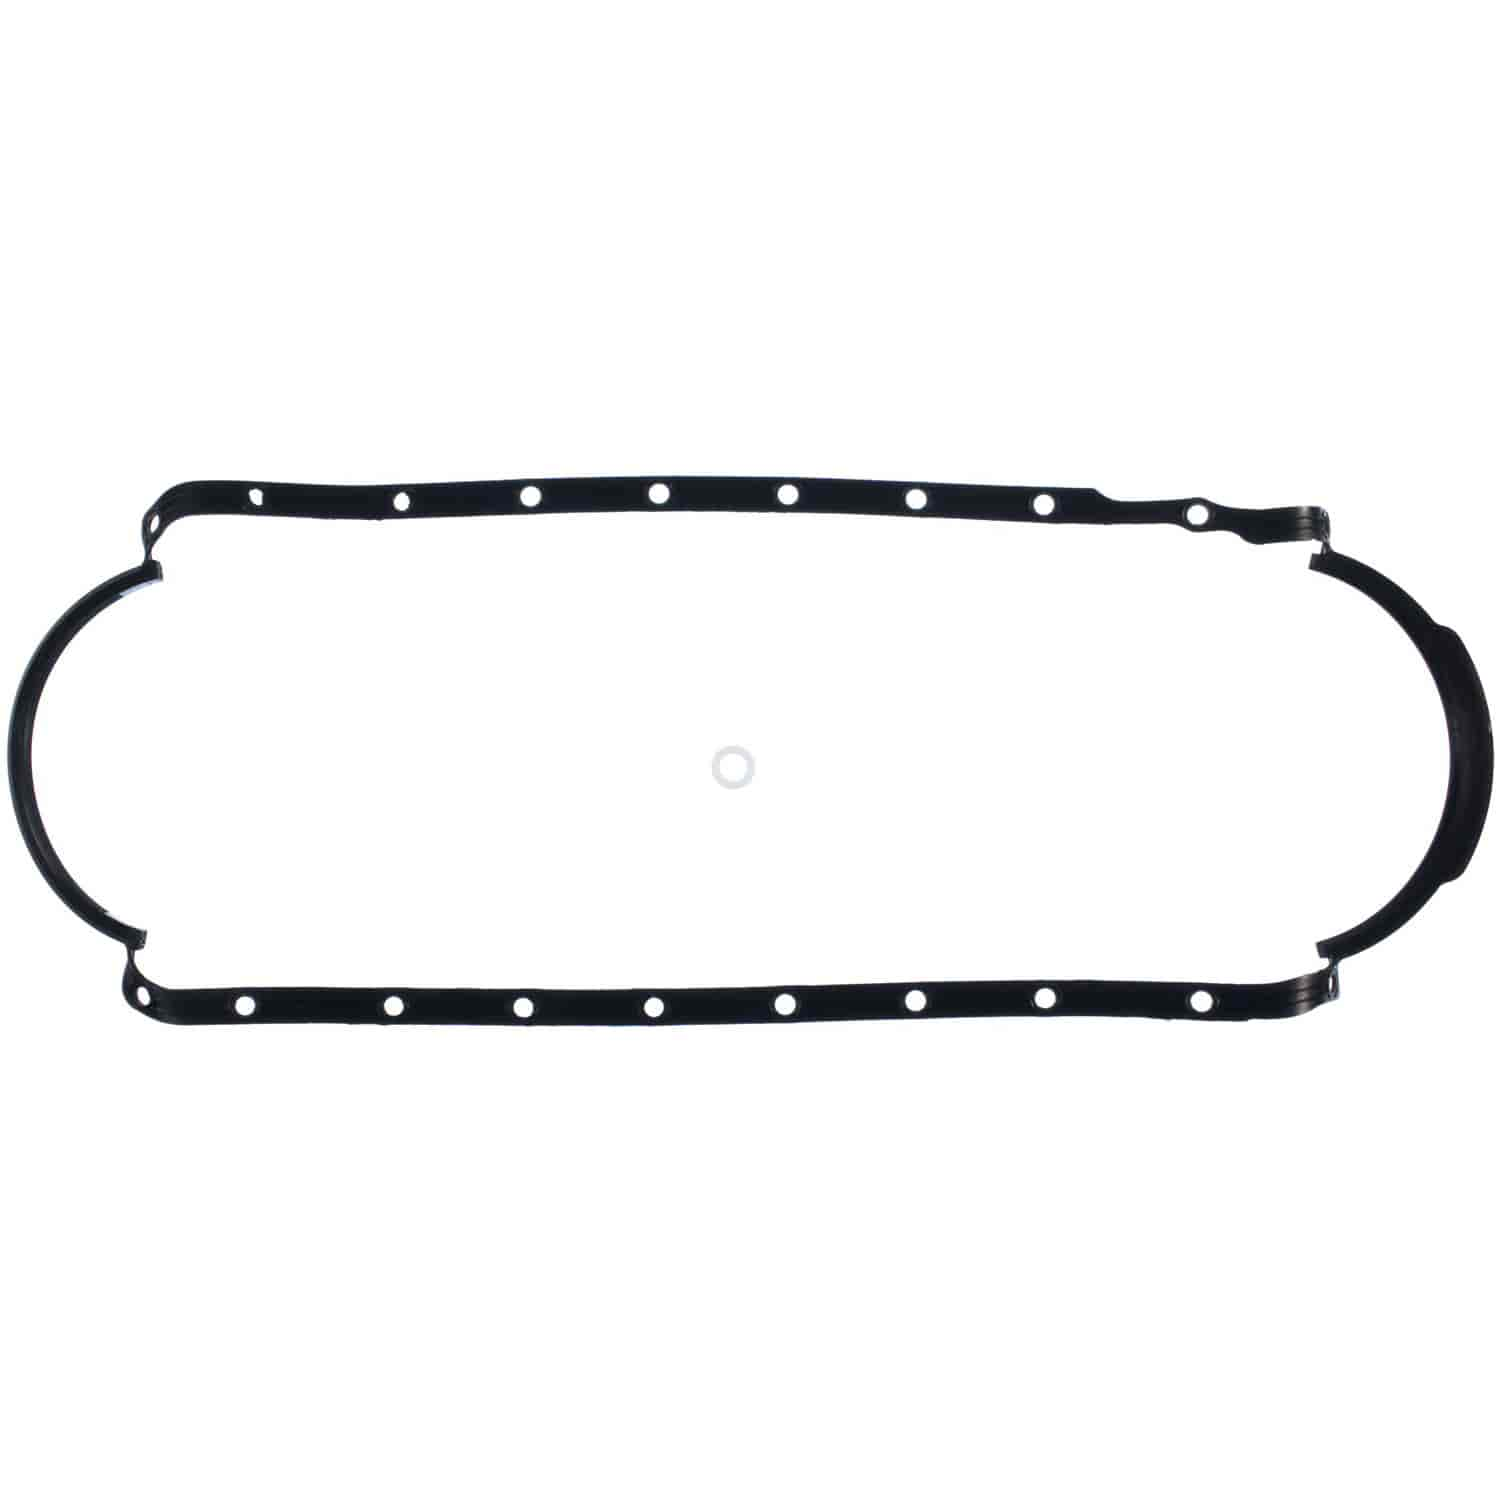 clevite mahle os32121  oil pan gasket set 1991 454ci  7 0  7 4l  in